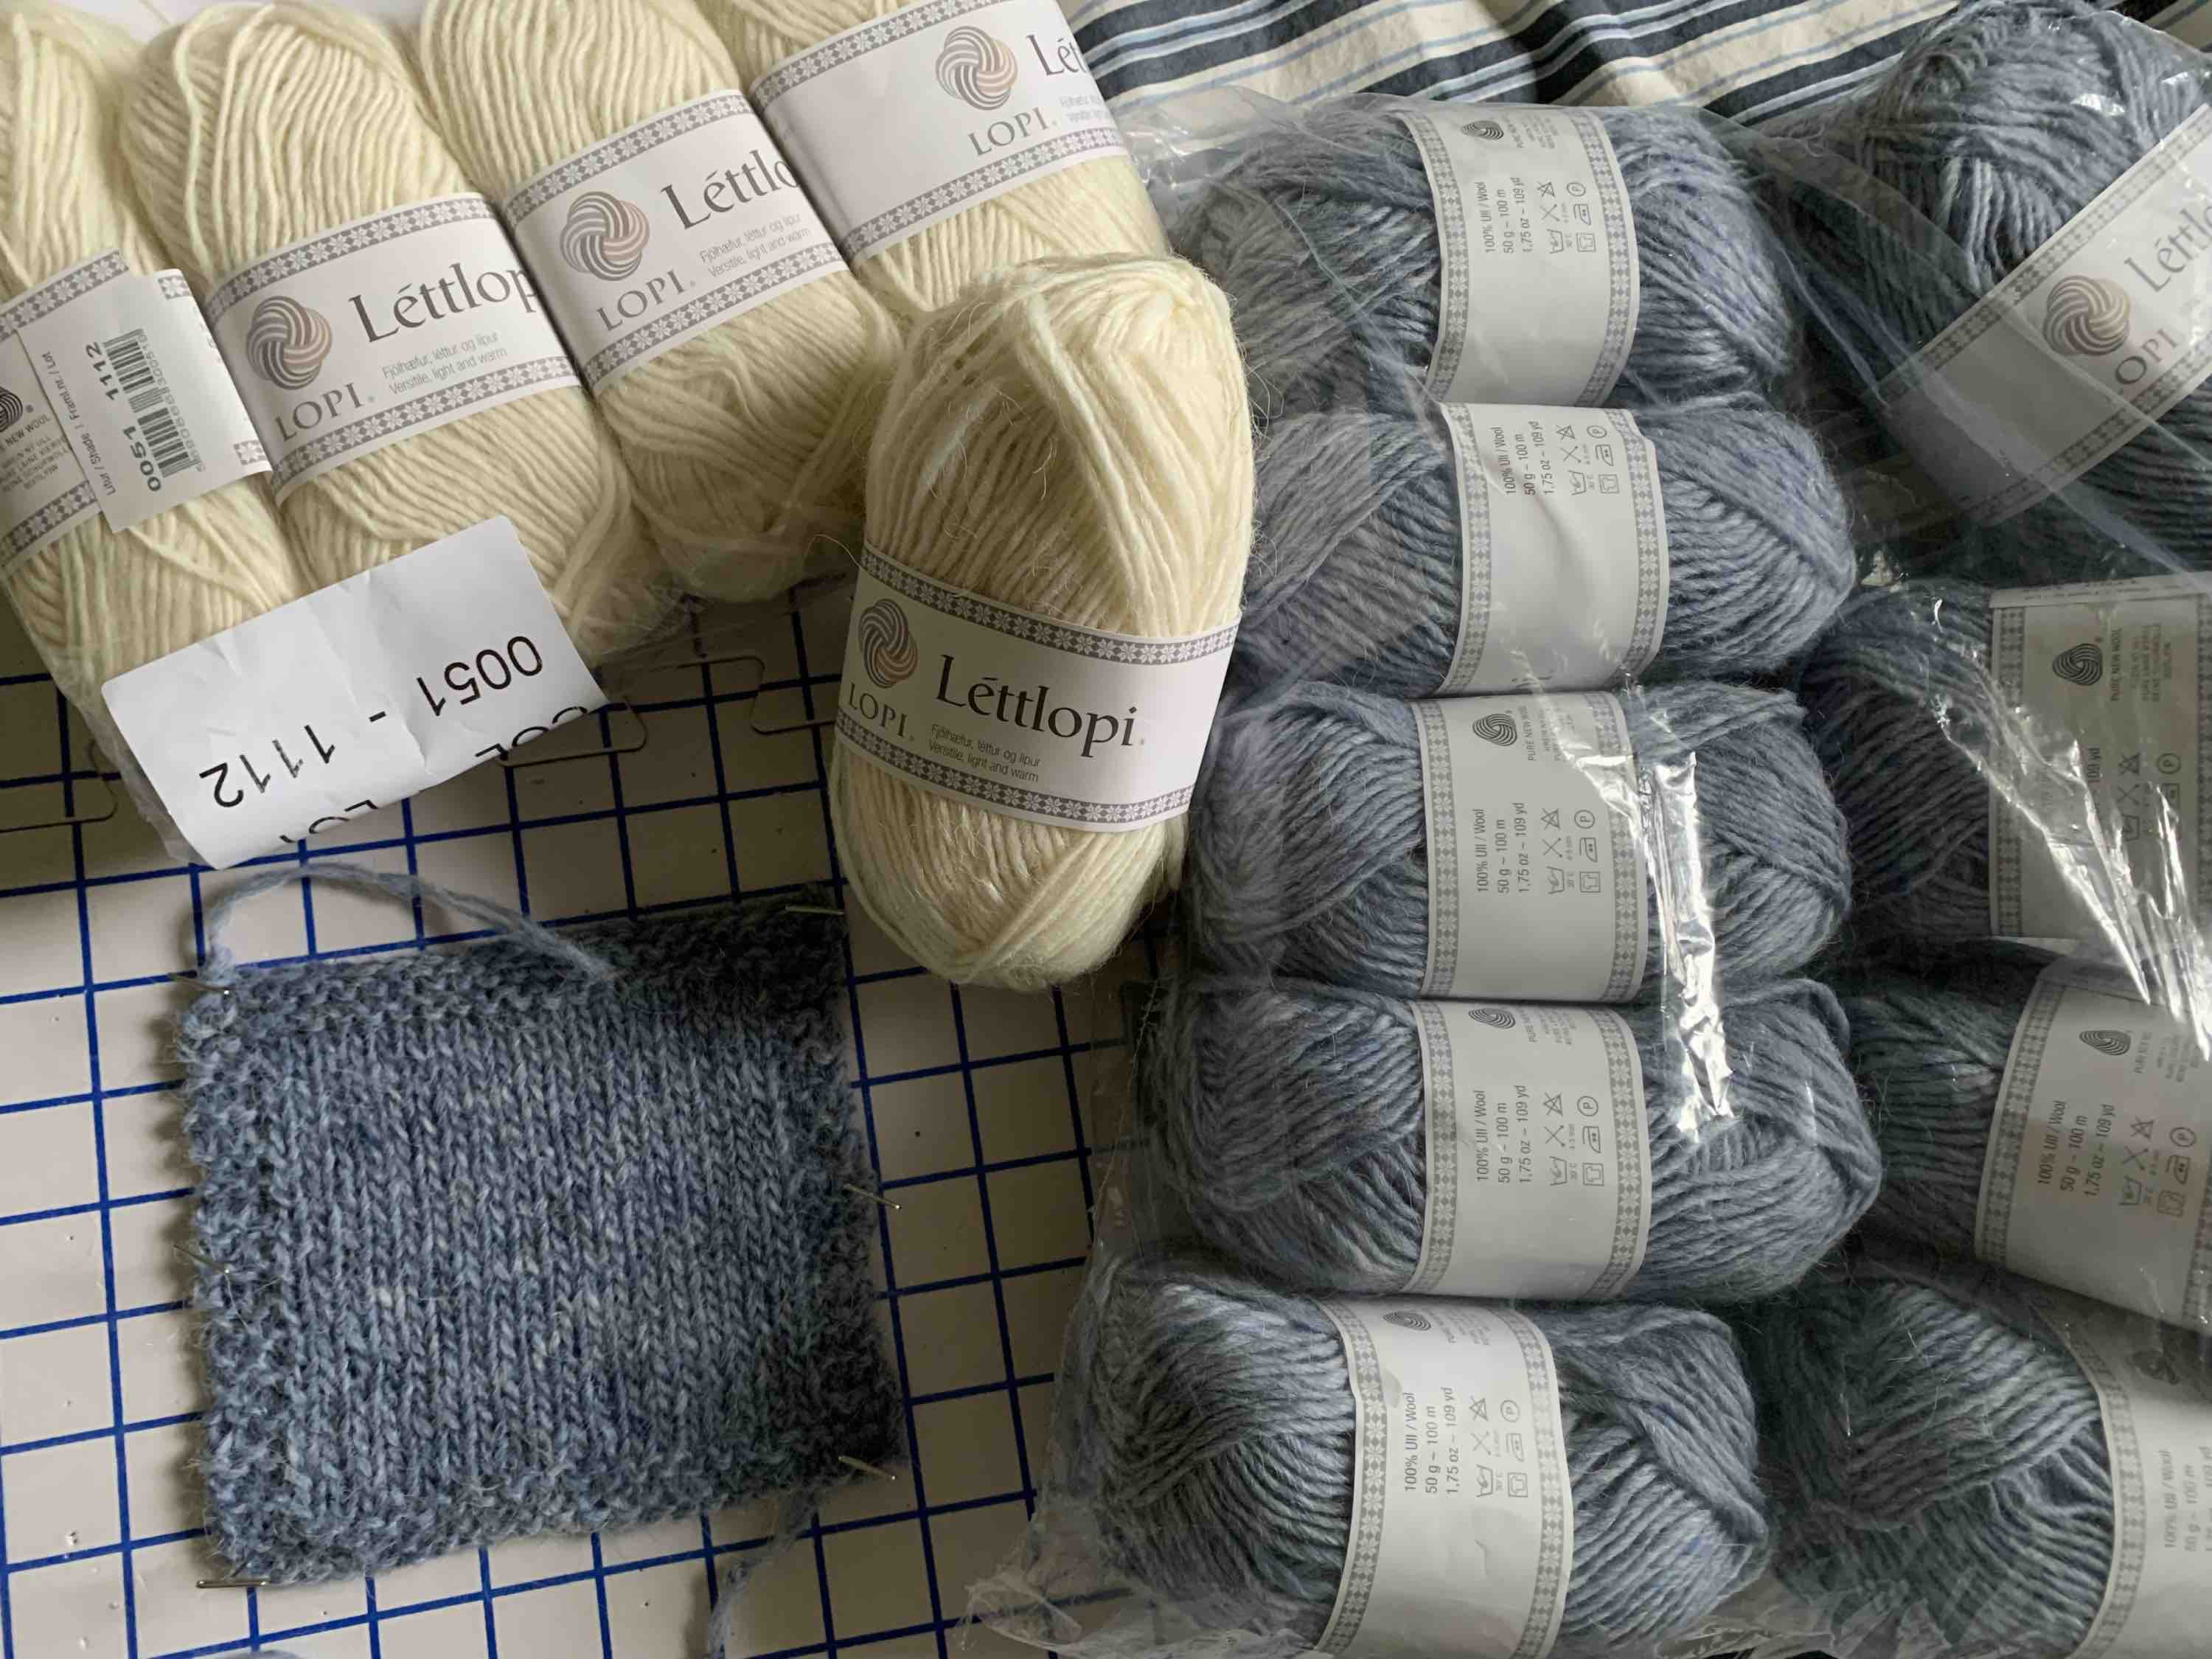 Lettlopi wool skeins in white and blue